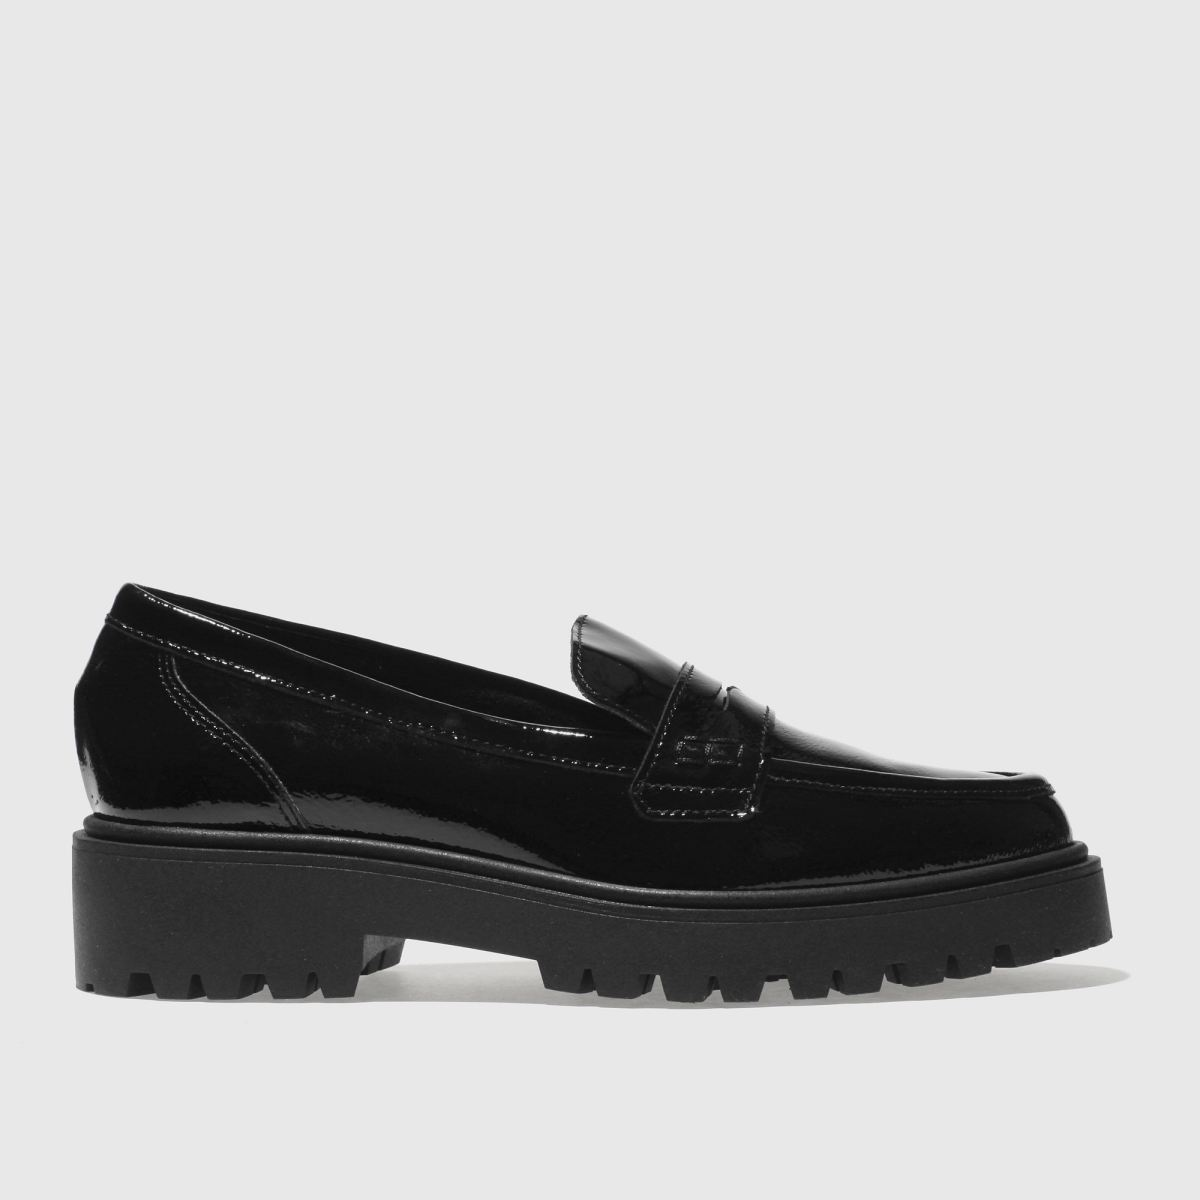 Schuh Black Glimmer Flat Shoes